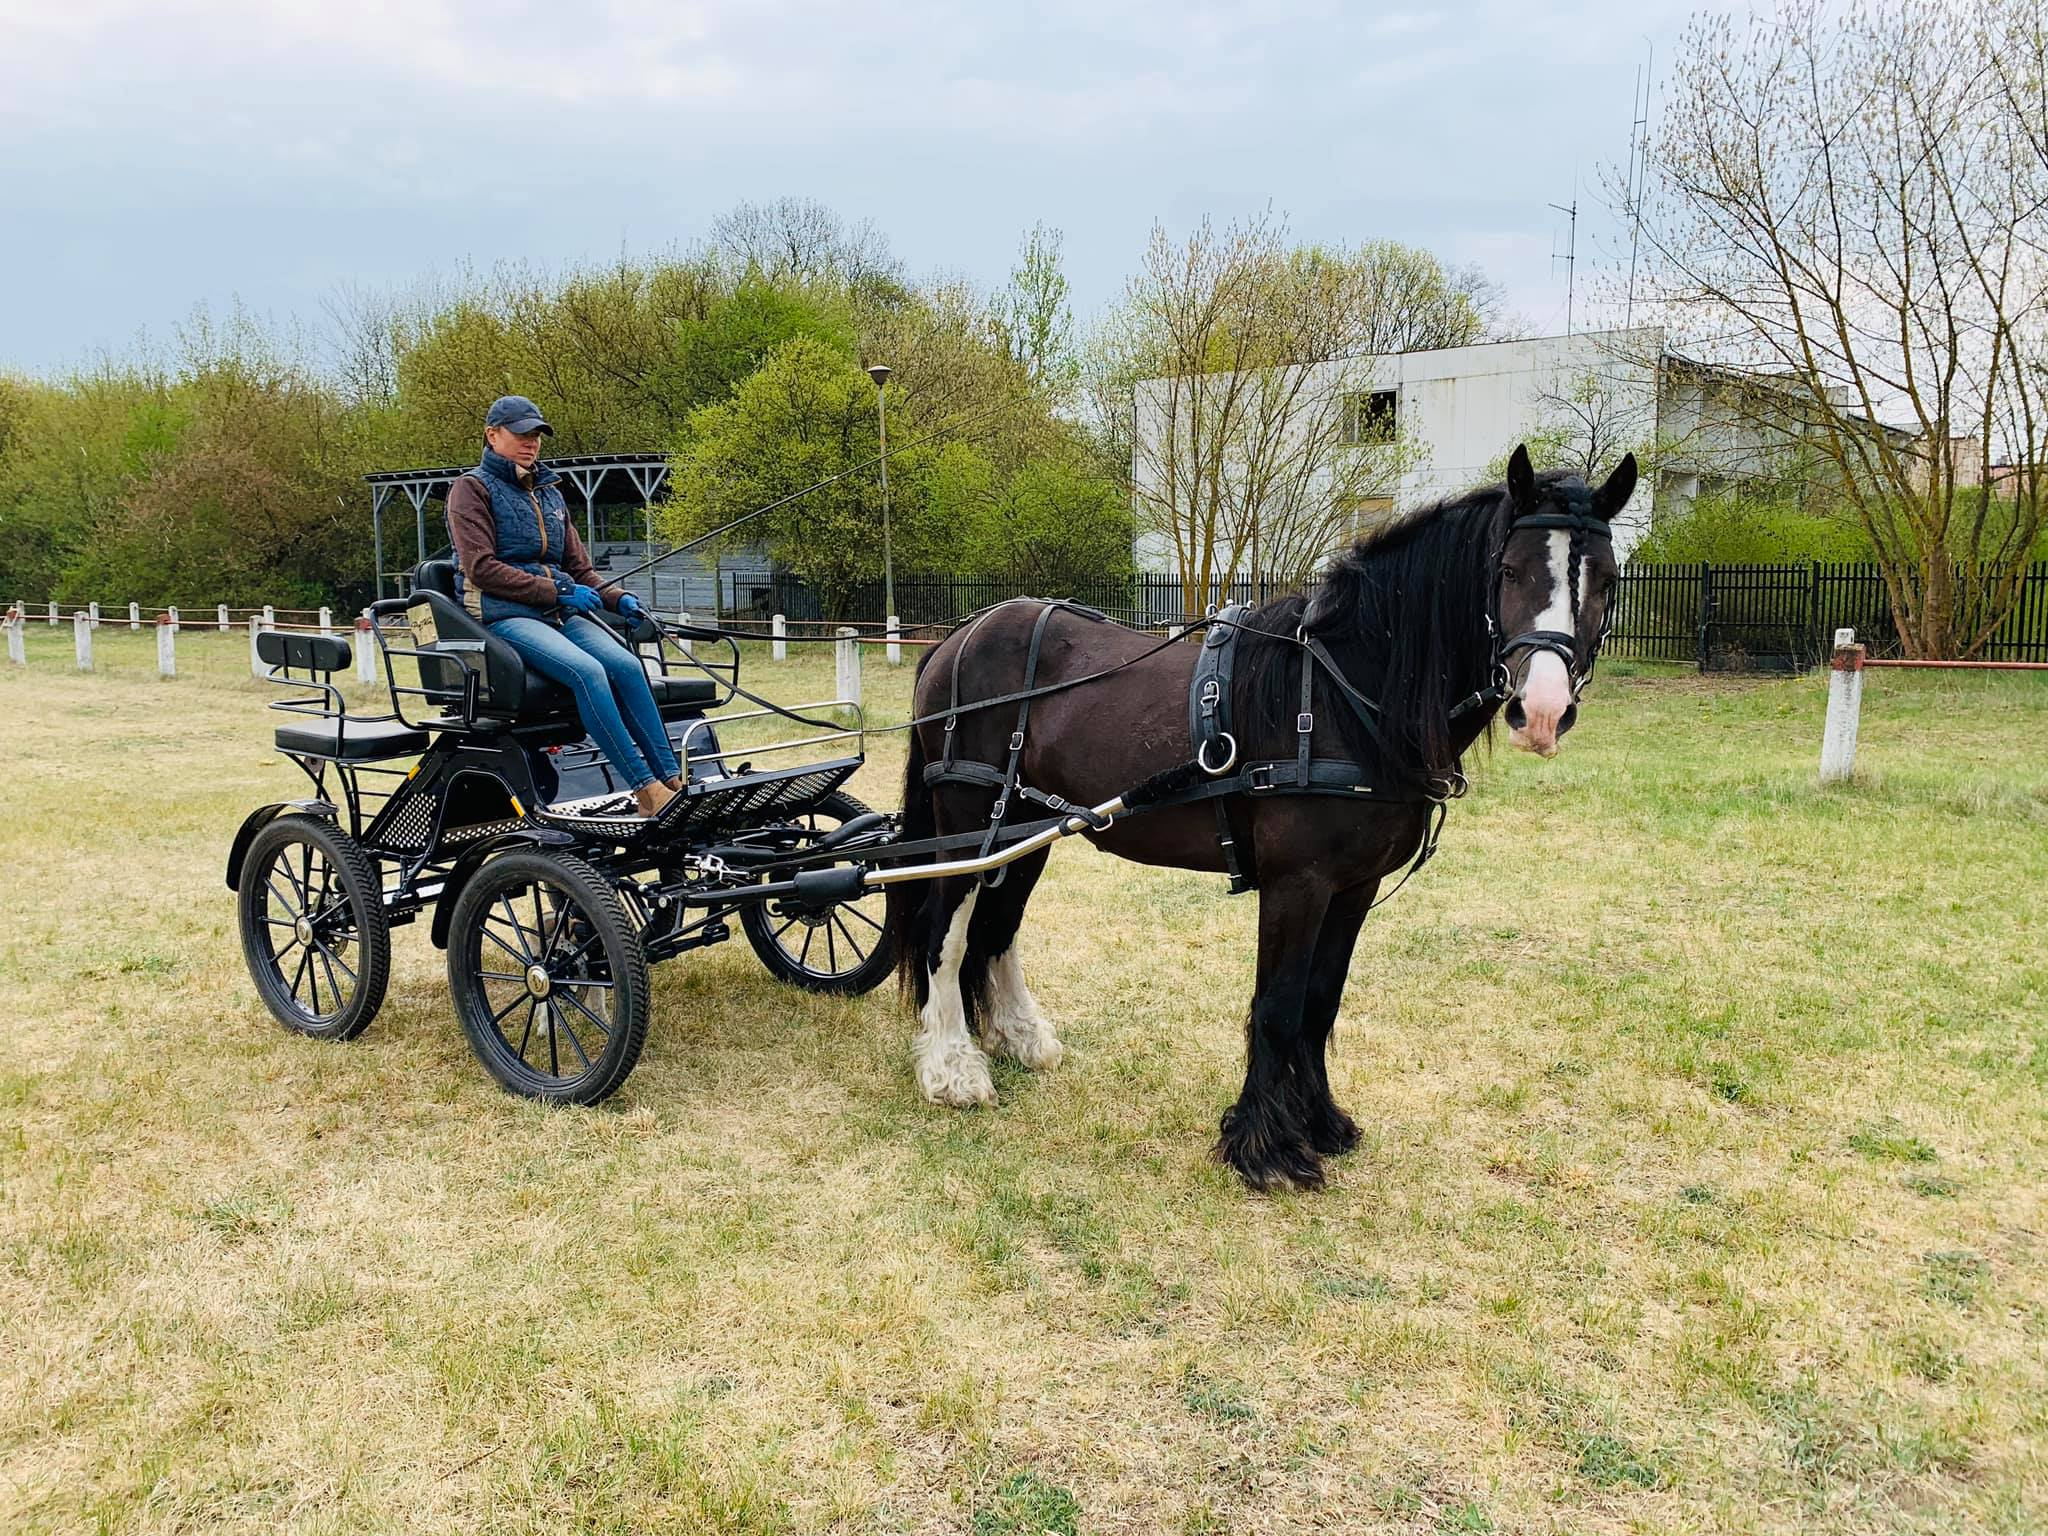 World Drivining Carriage Champion trainer